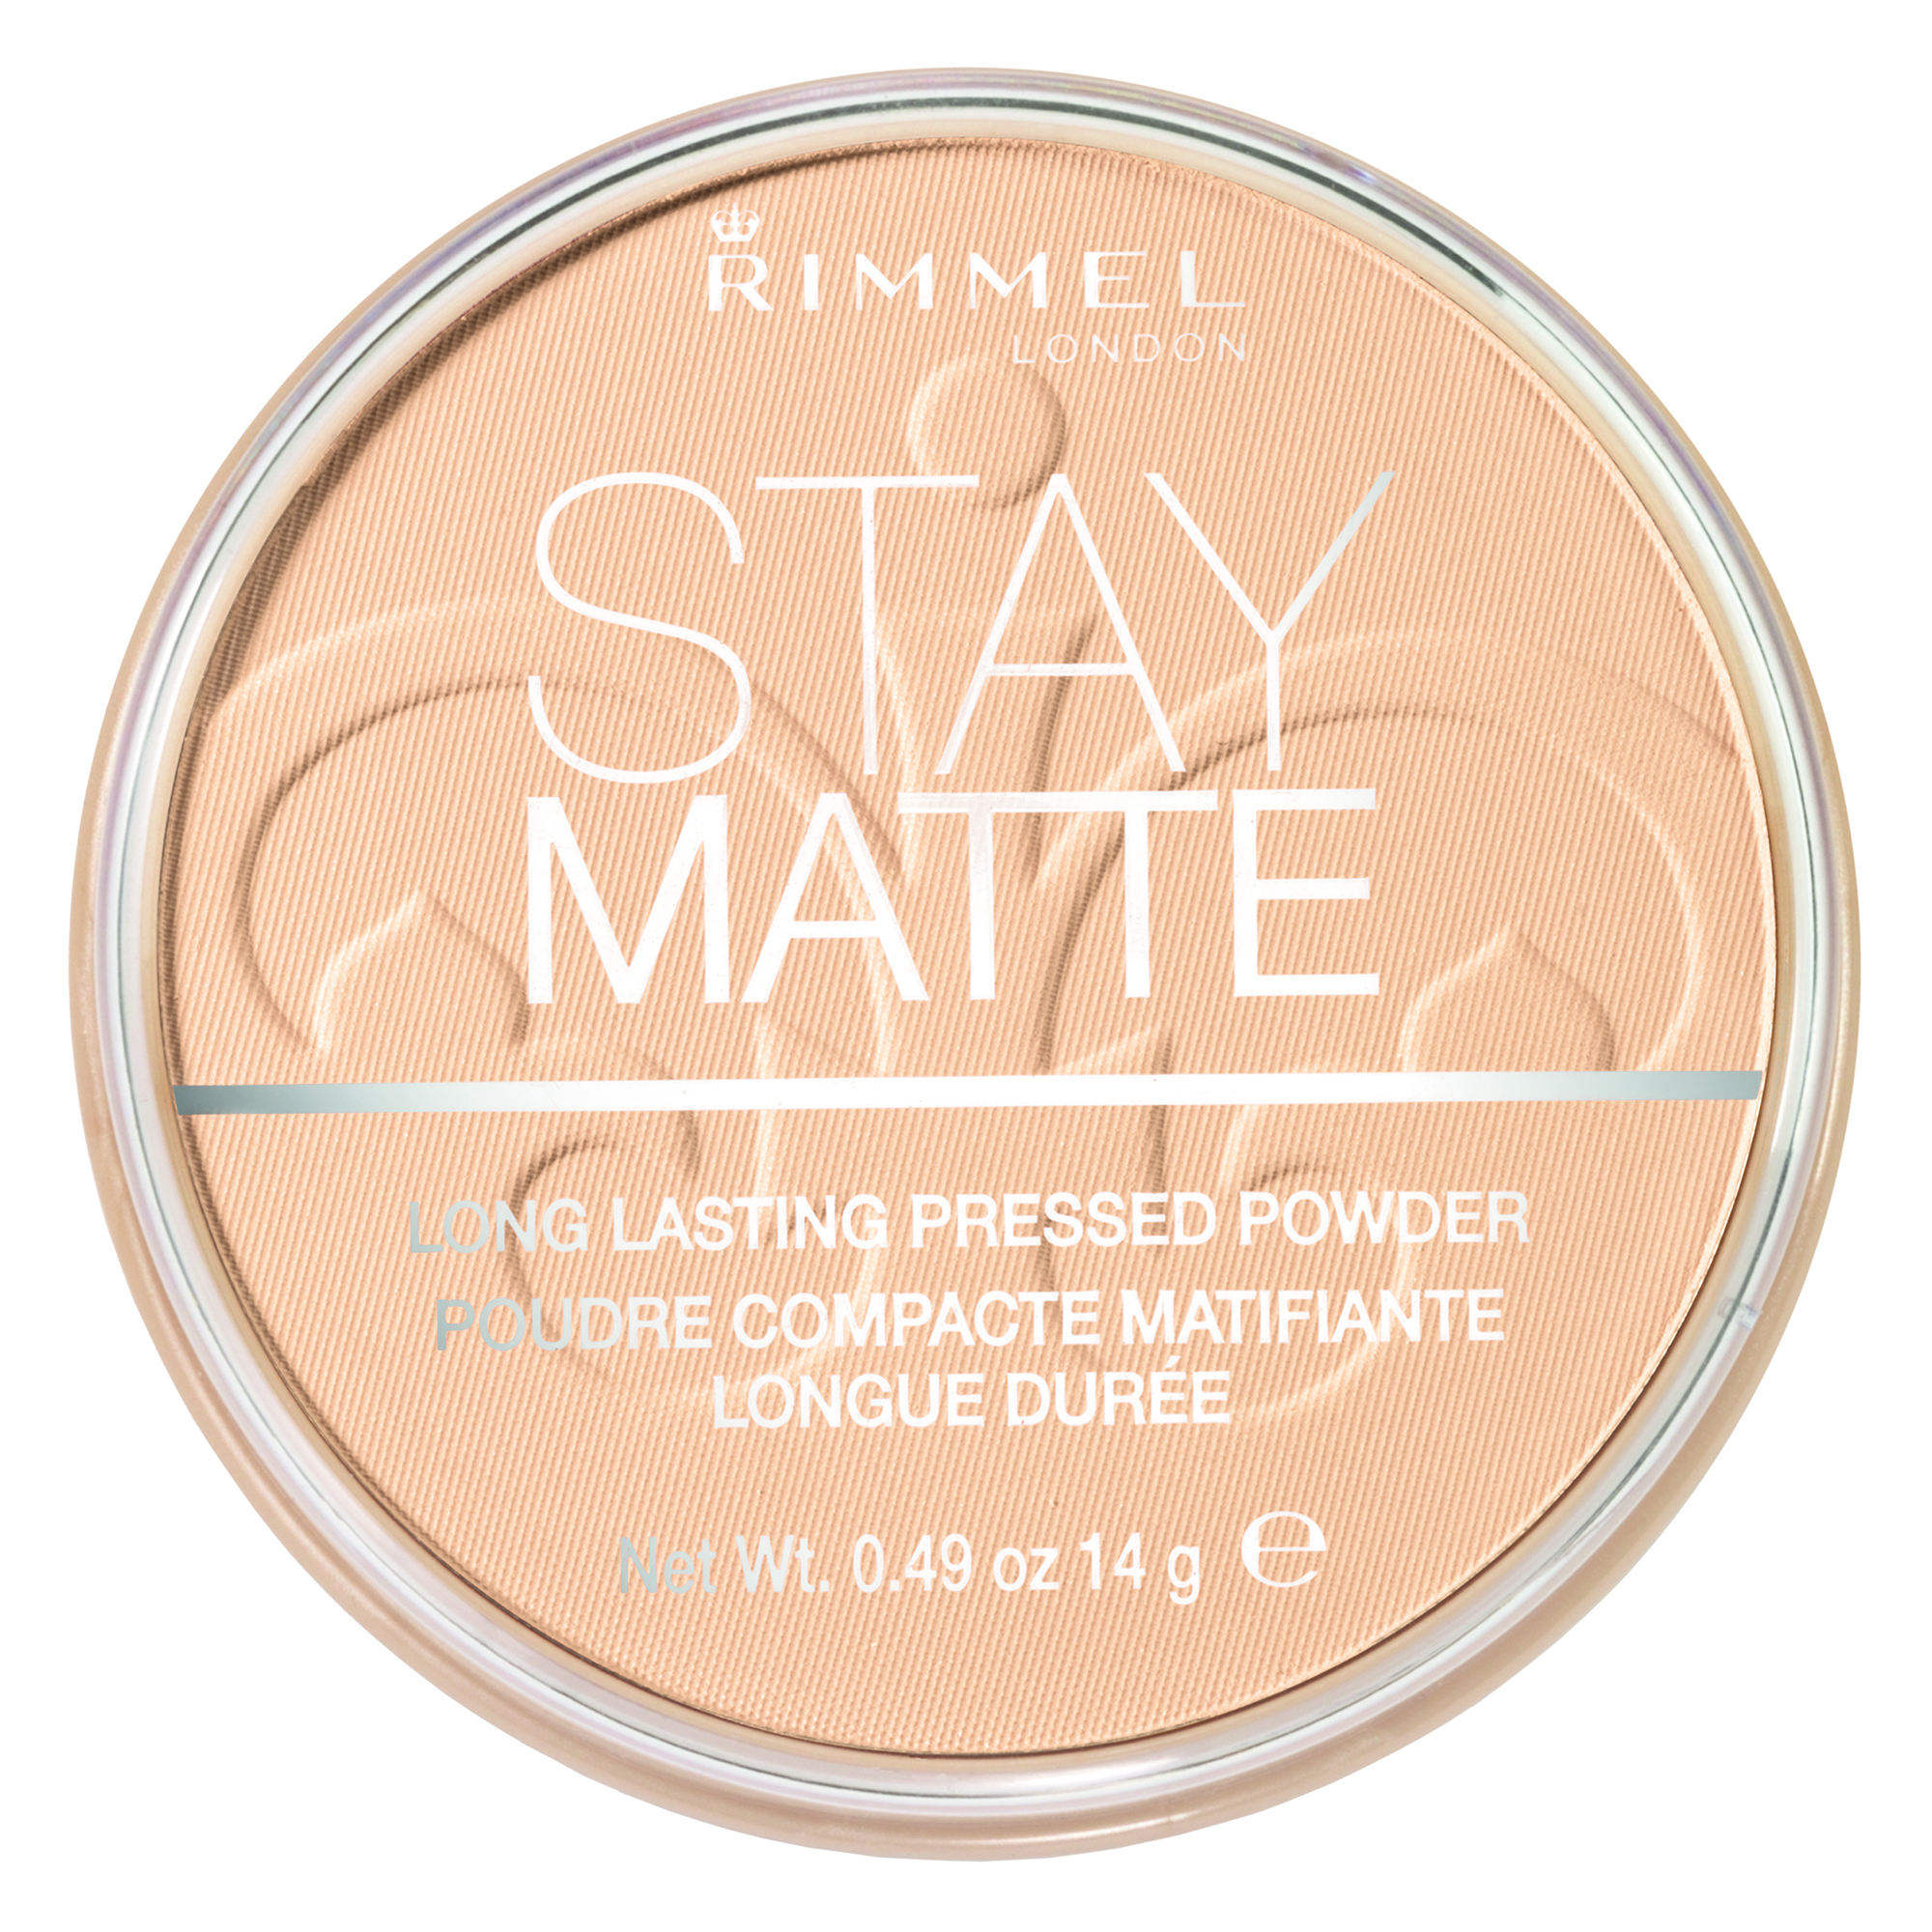 Rimmel Stay Matte Pressed Powder, Transparent 001, .49 oz (14 g)